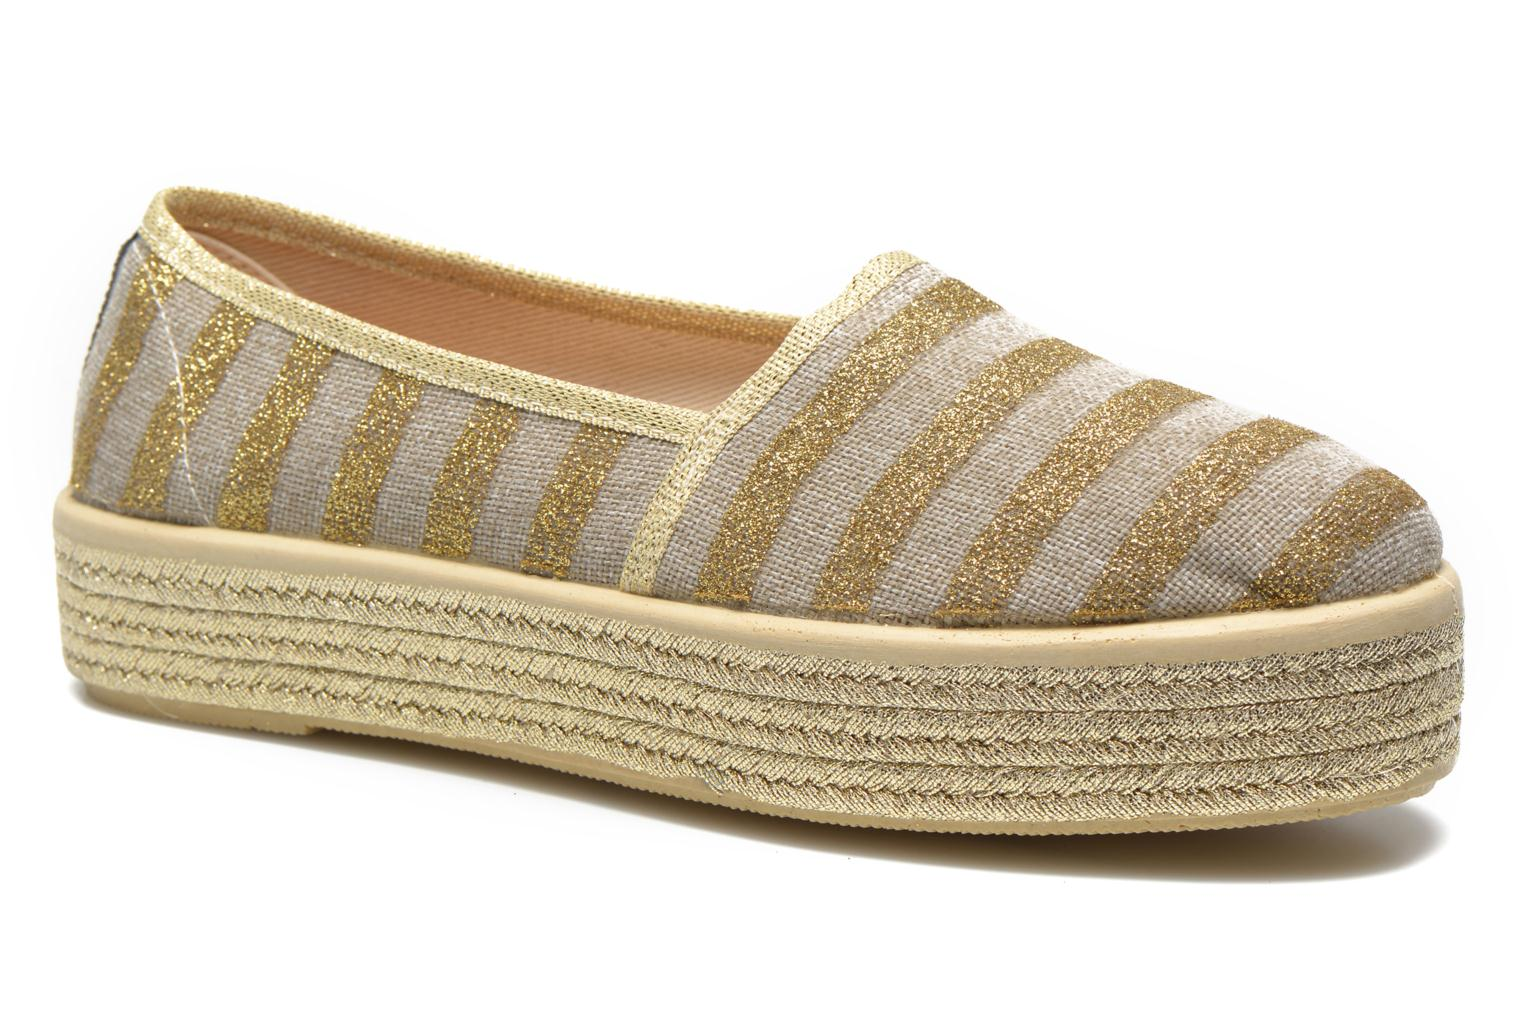 Zipiti stripes oro